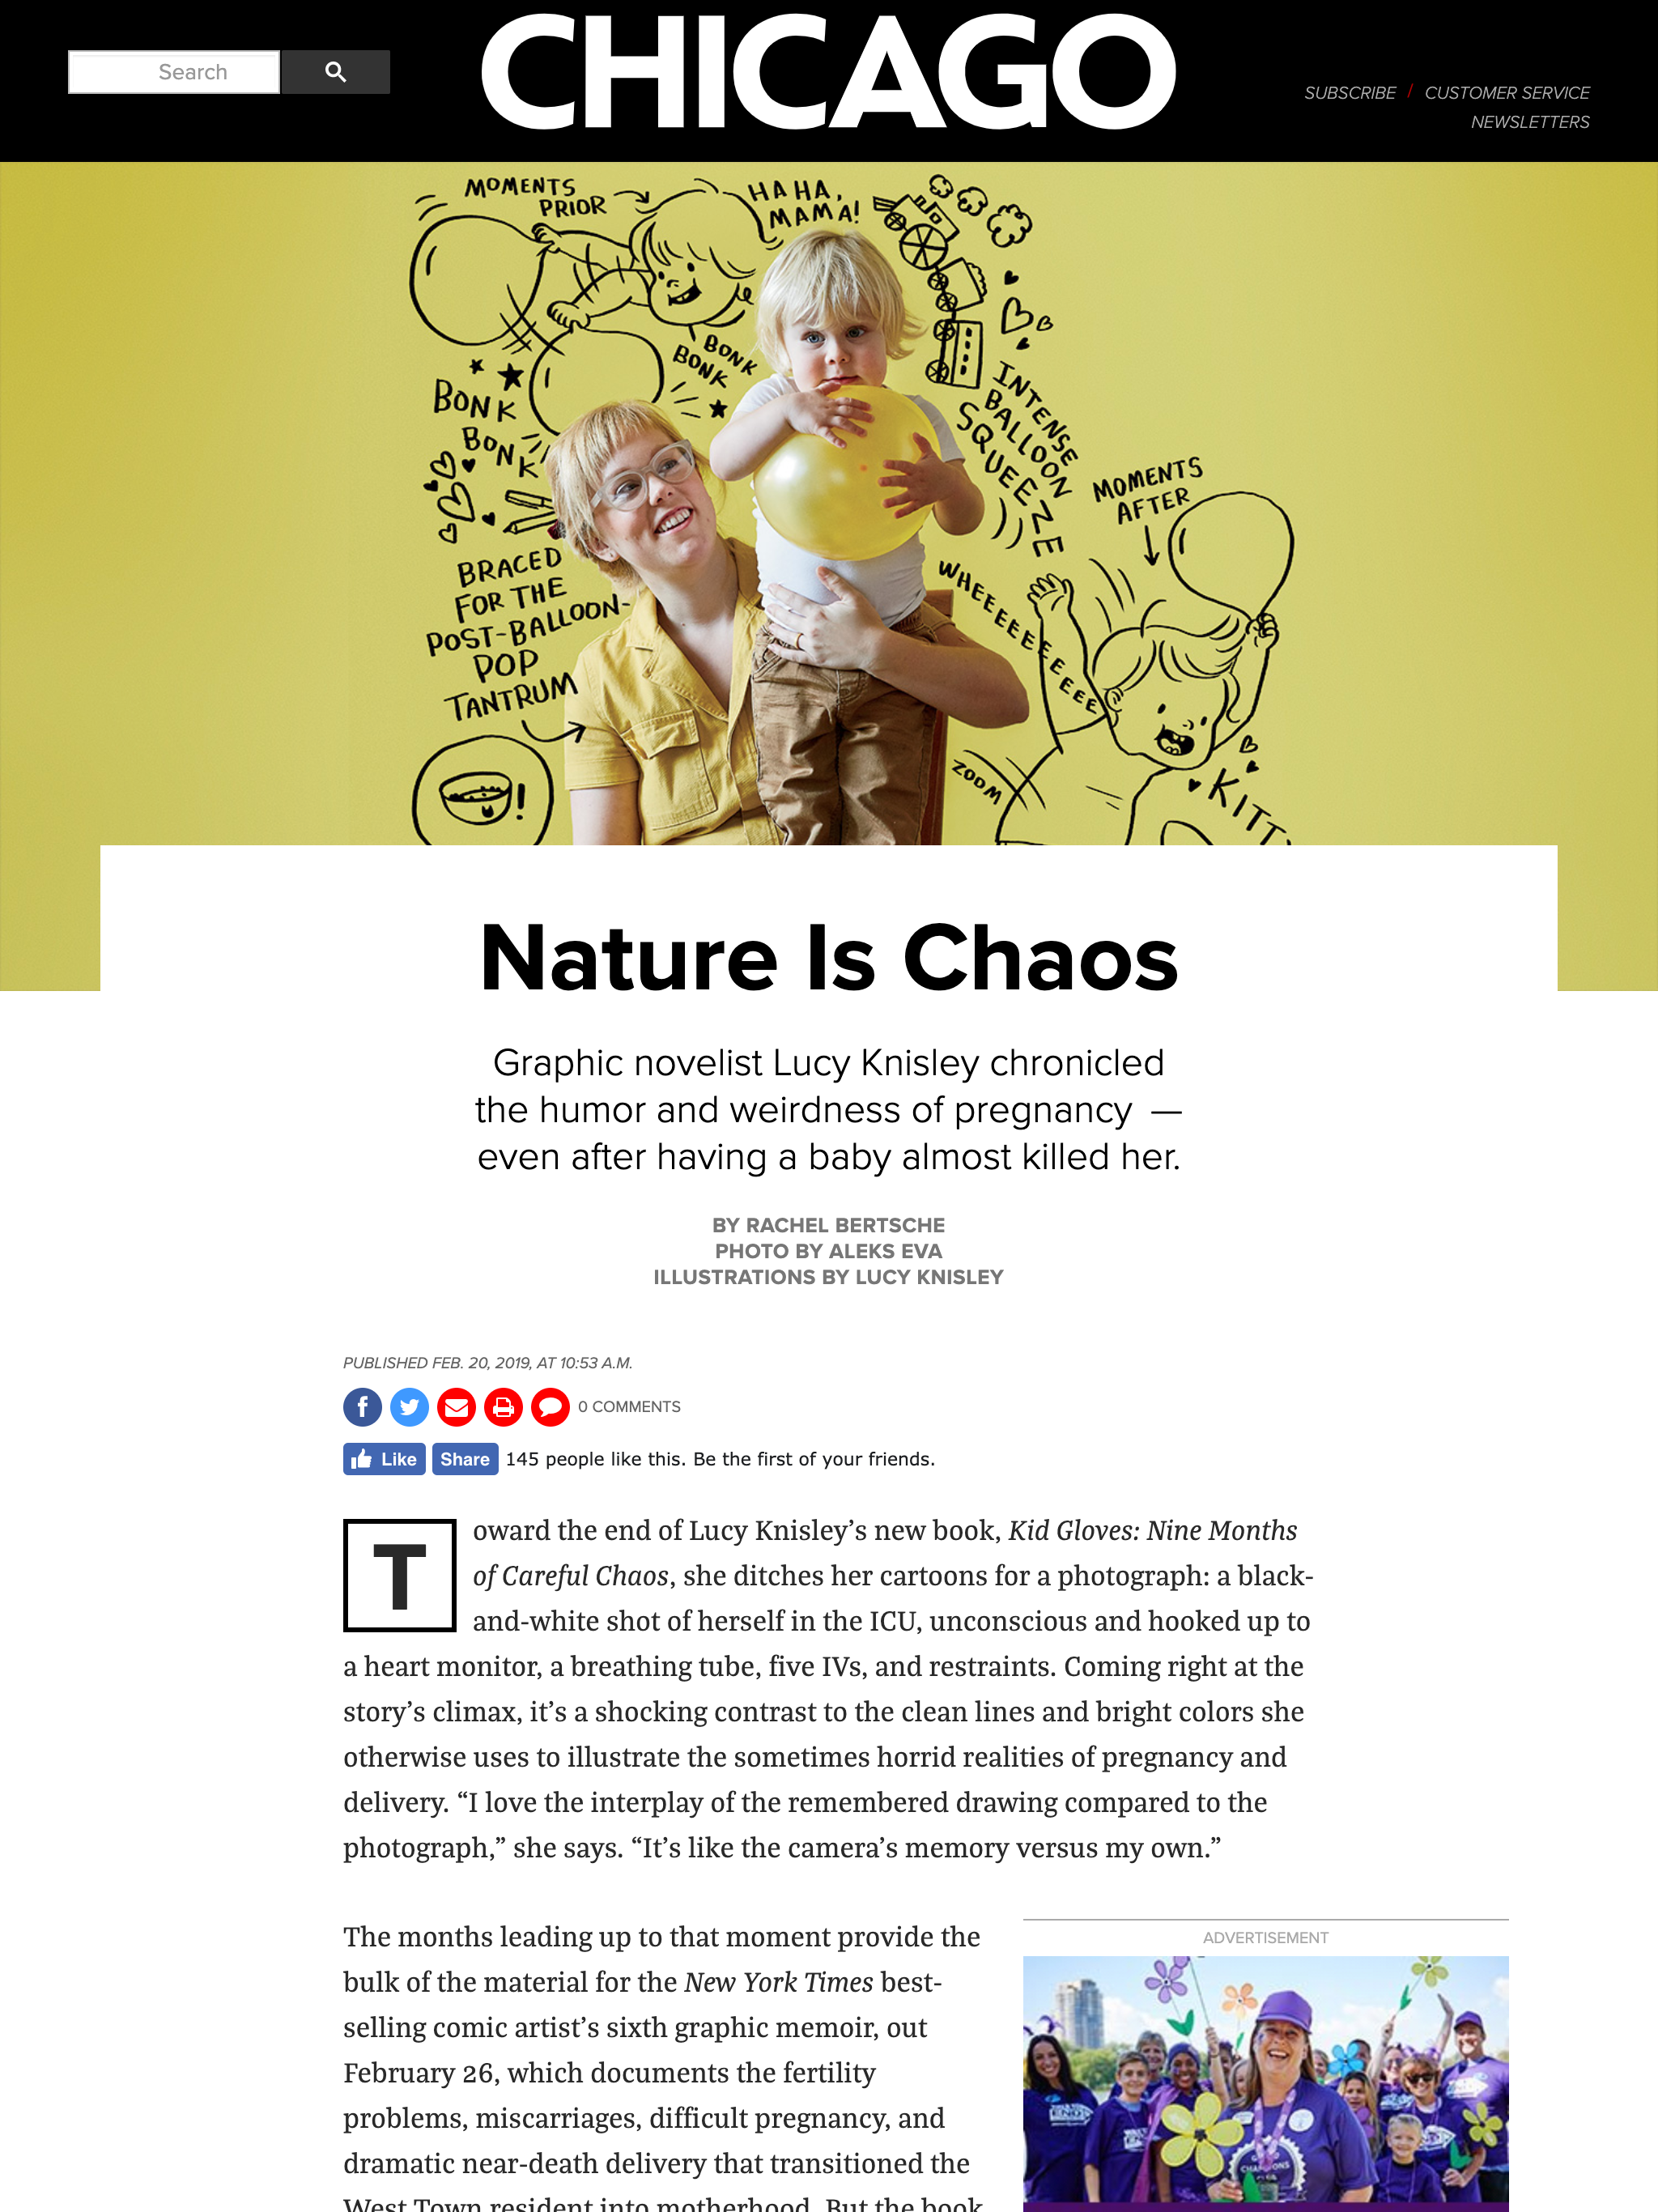 www.chicagomag.com_Chicago-Magazine_February-2019_Lucy-Knisley-Kid-Gloves_(iPad Pro).png